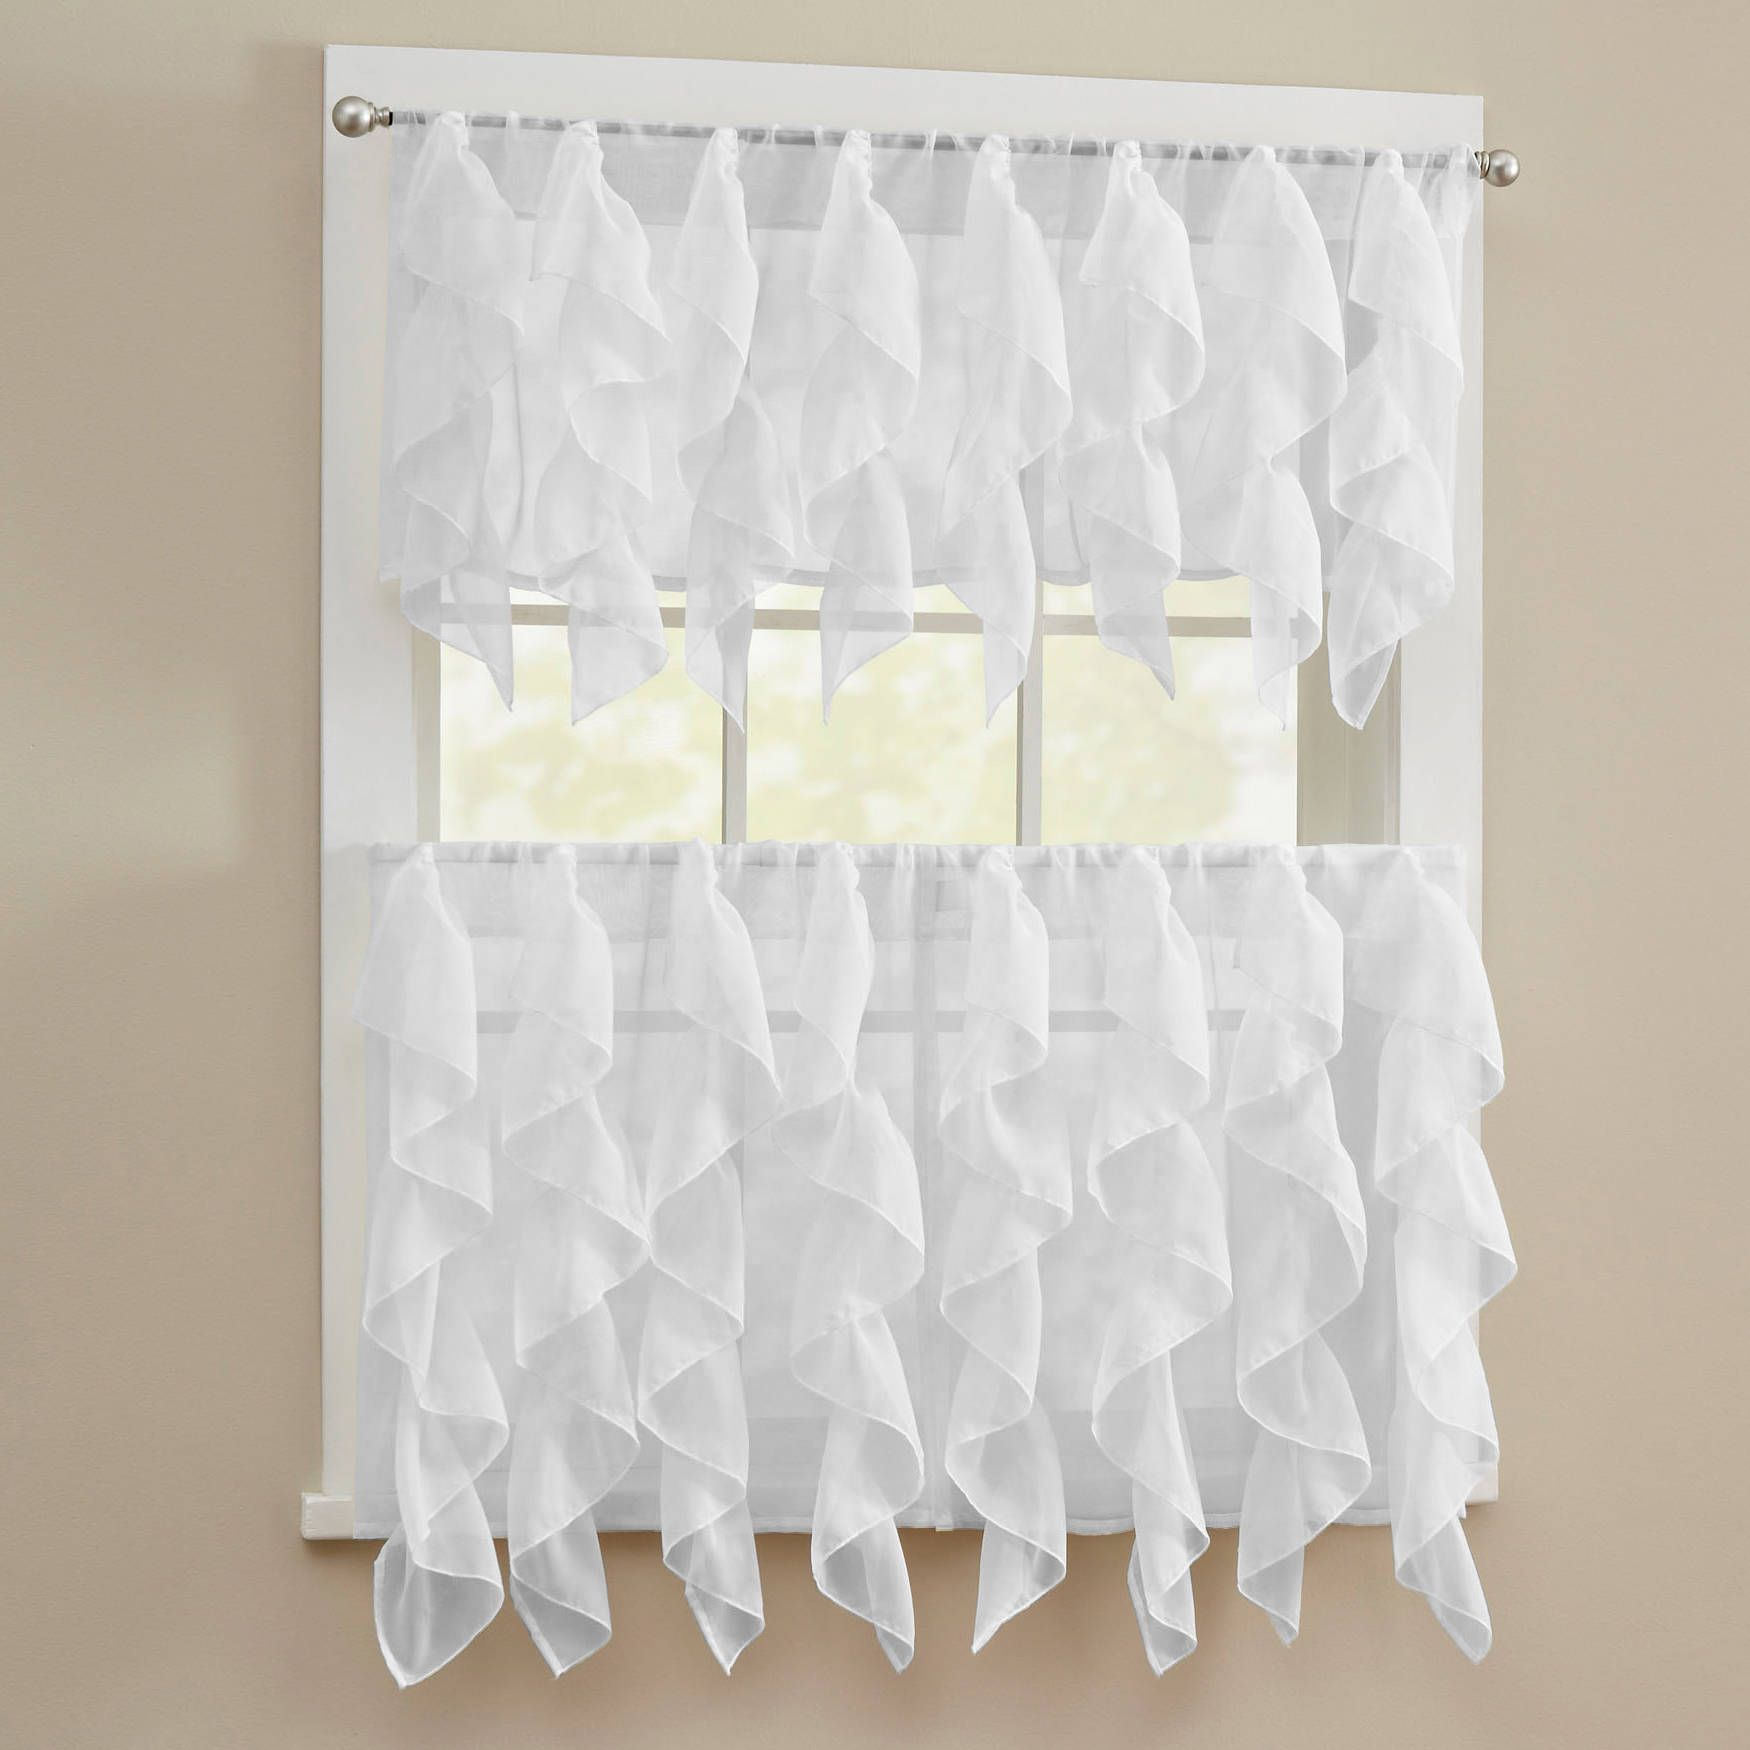 N chic sheer voile vertical ruffled tier window curtain valance and